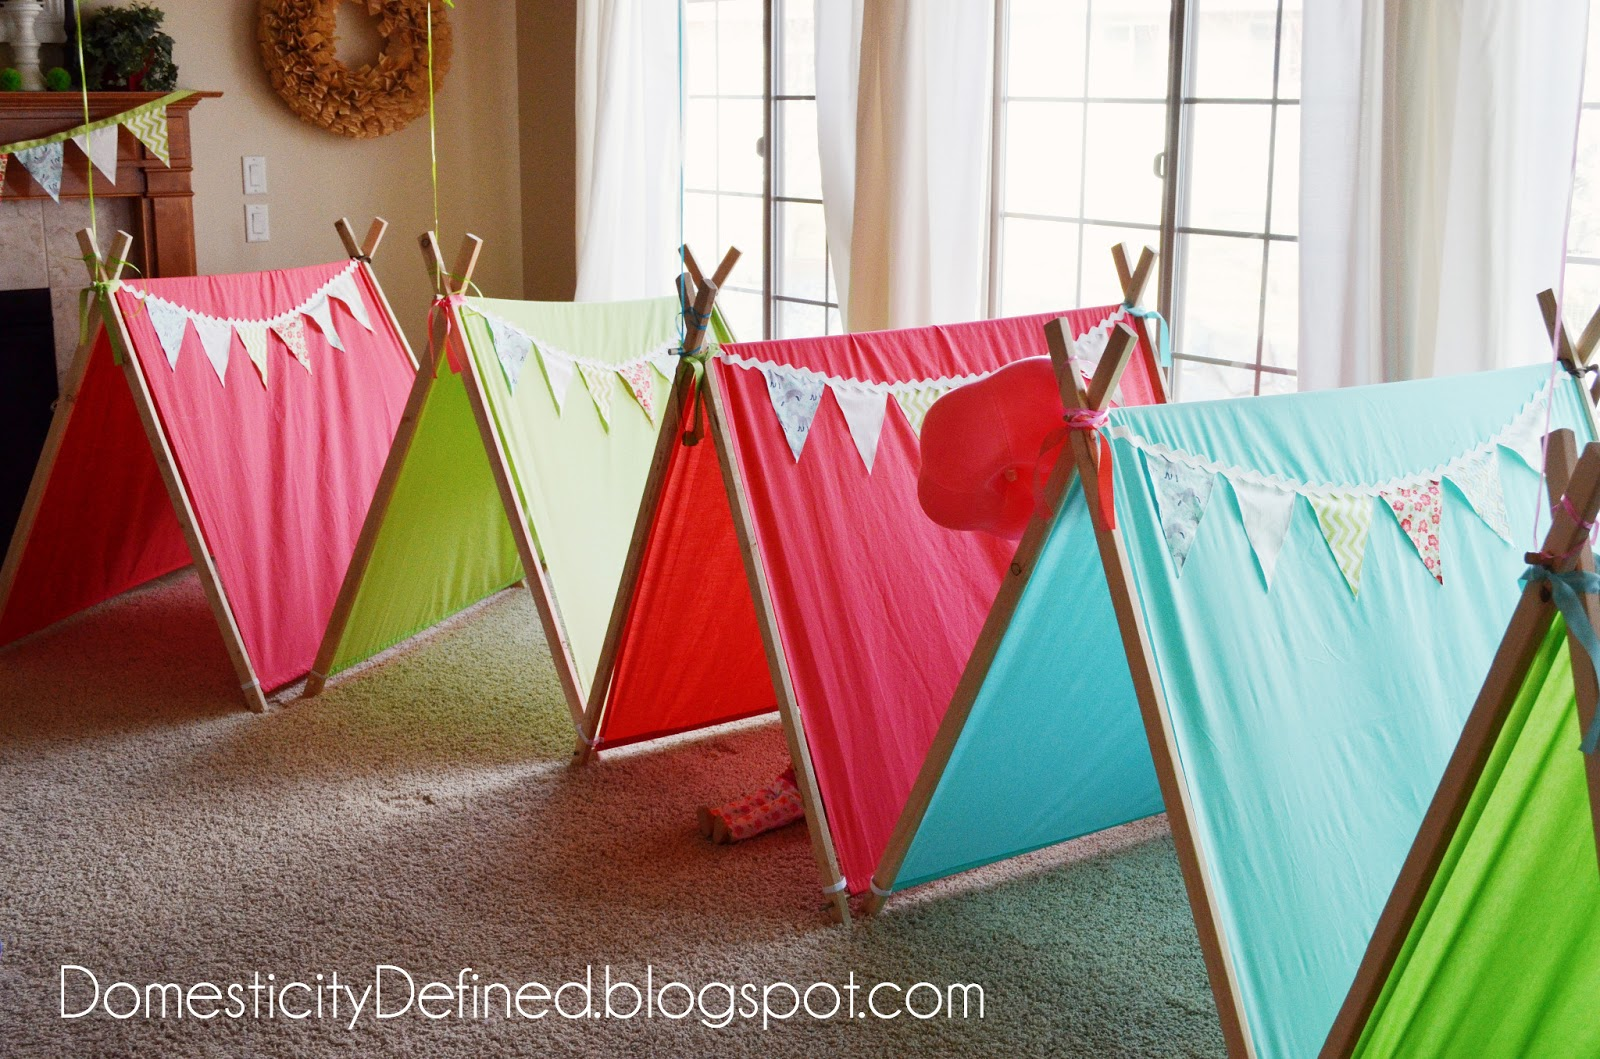 Domesticity Adorable Glamping Play Tents